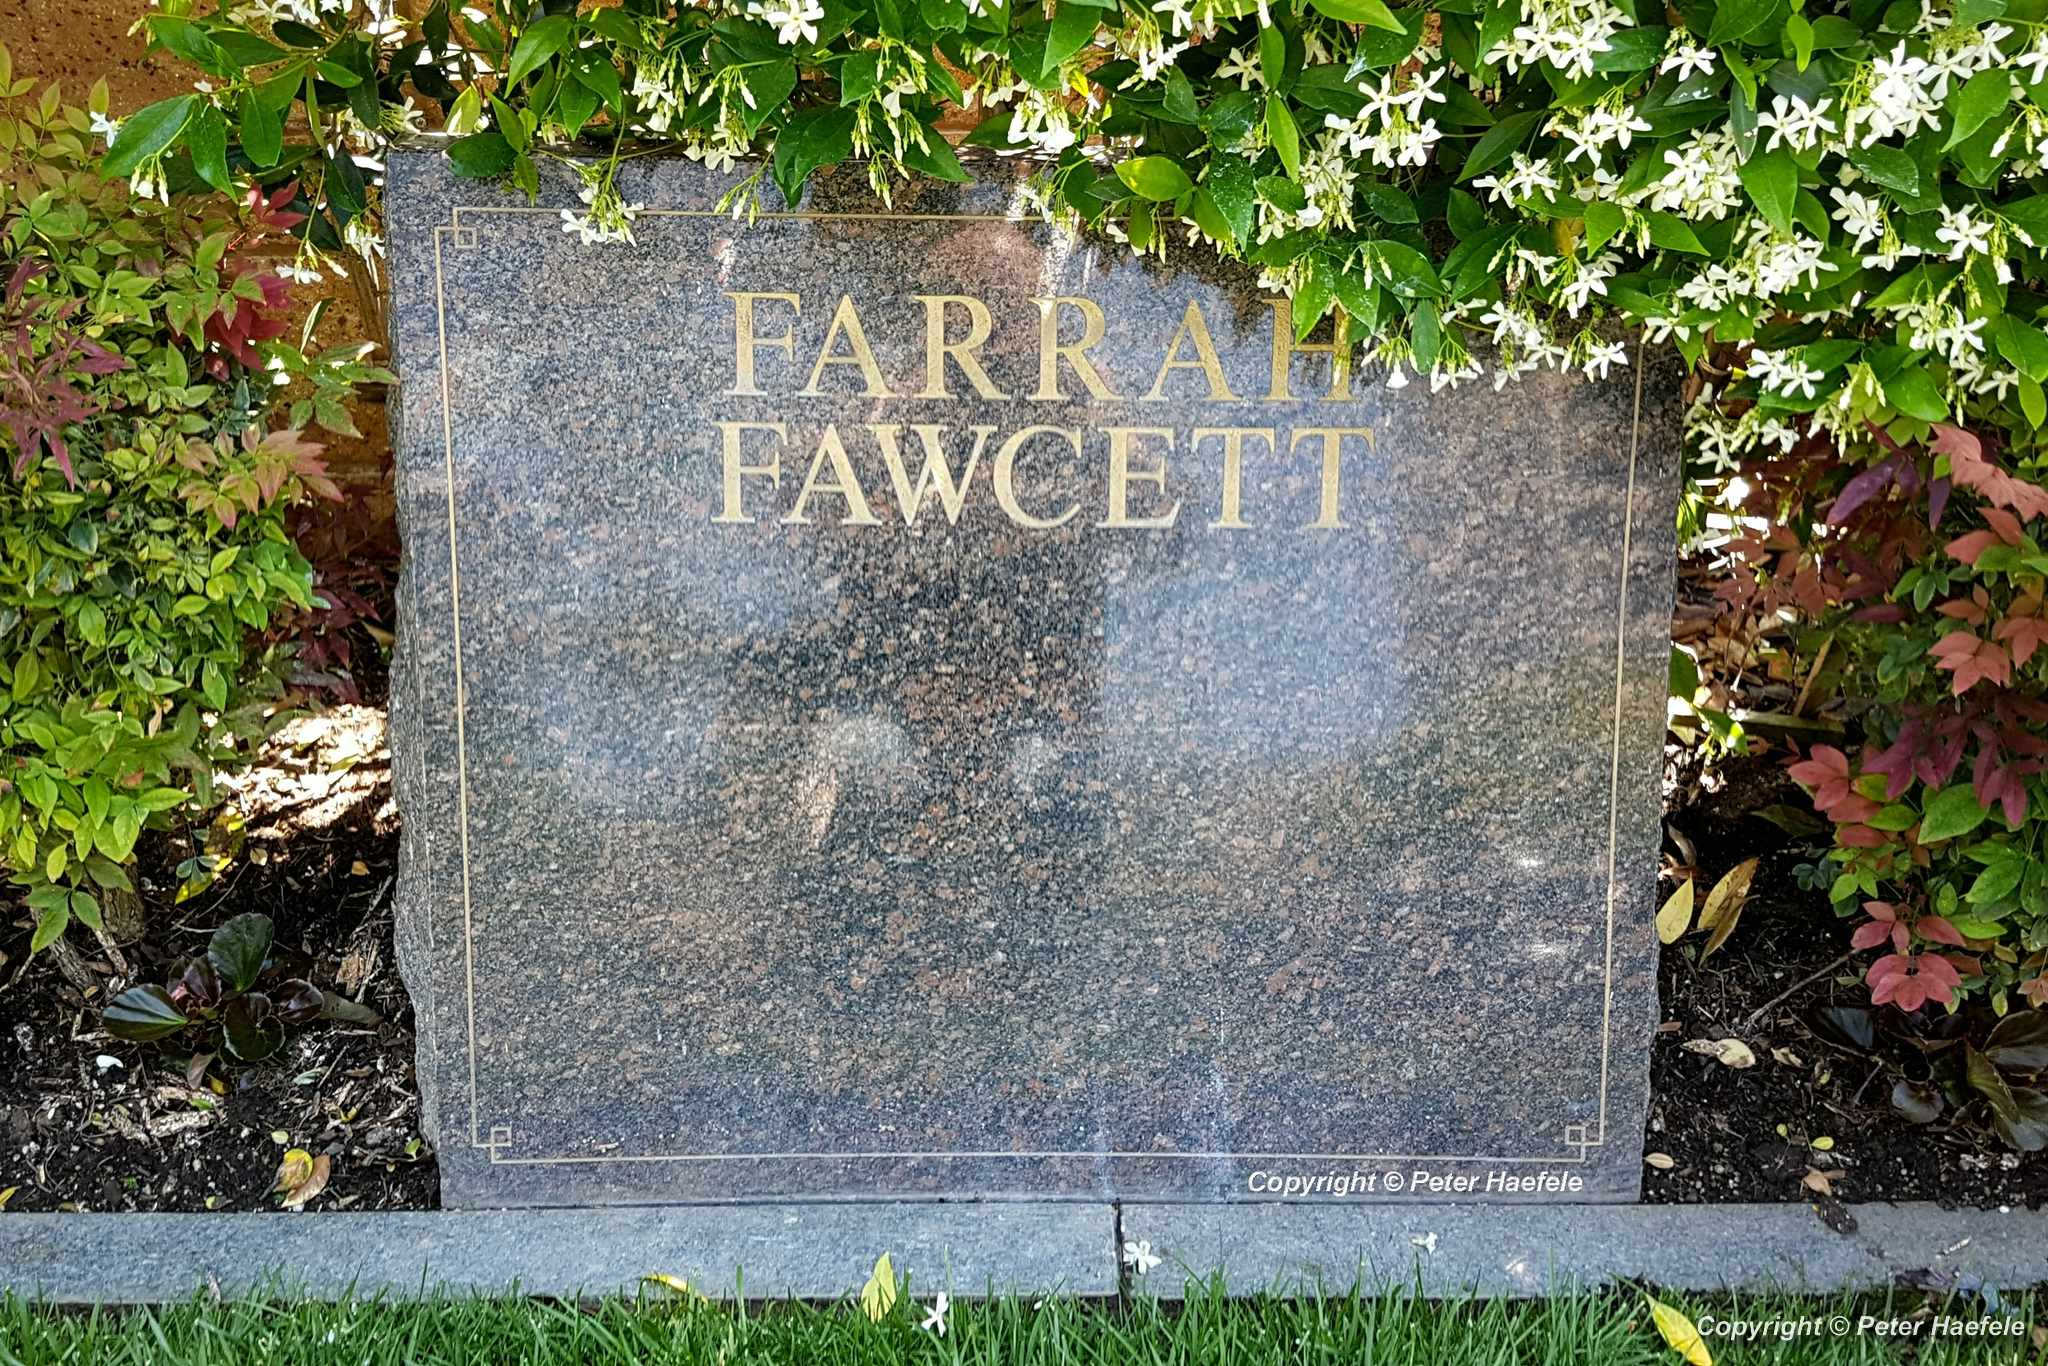 Roadtrip USA - Westwood Village Memorial Park Cemetery - Grave of Farrah Fawcett